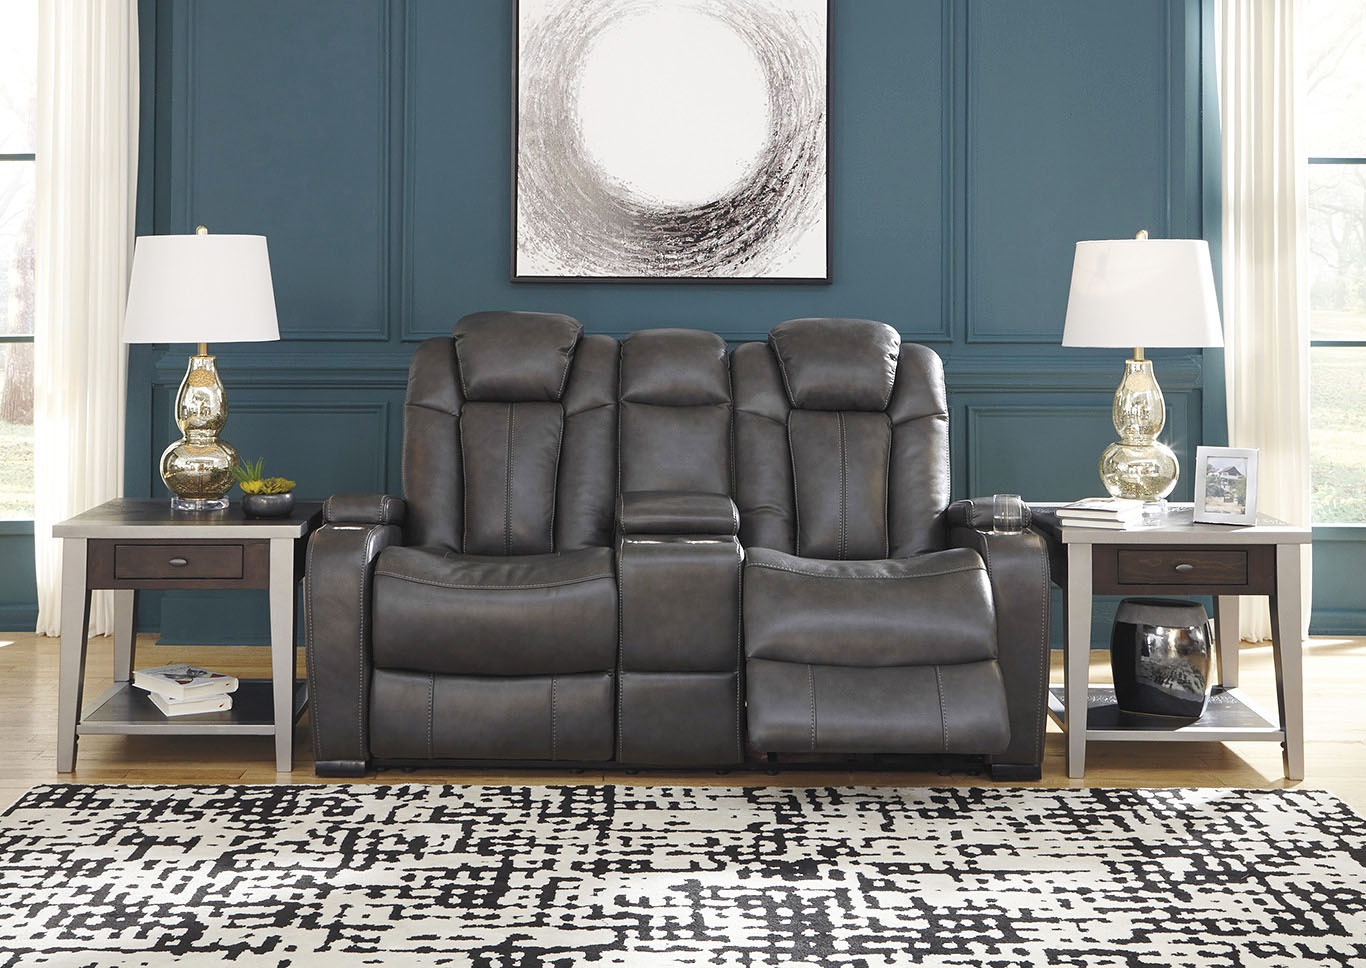 sclamo furniture worcester turbulance quarry leather power set accent table reclining loveseat adjustable headrest console signature design high legs bath beyond gift registry